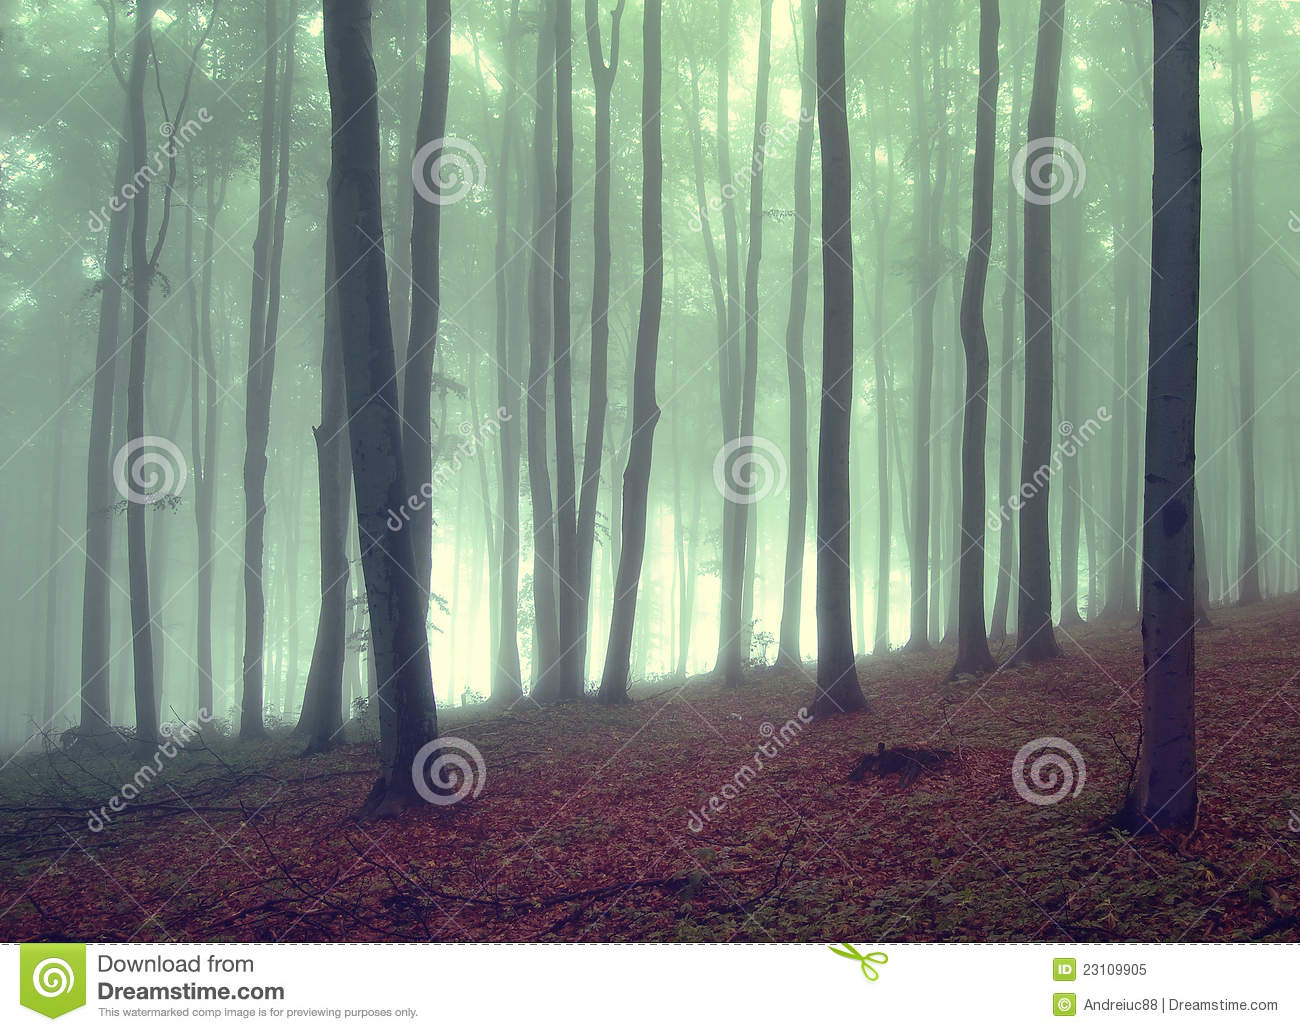 Green fog in a beautiful forest